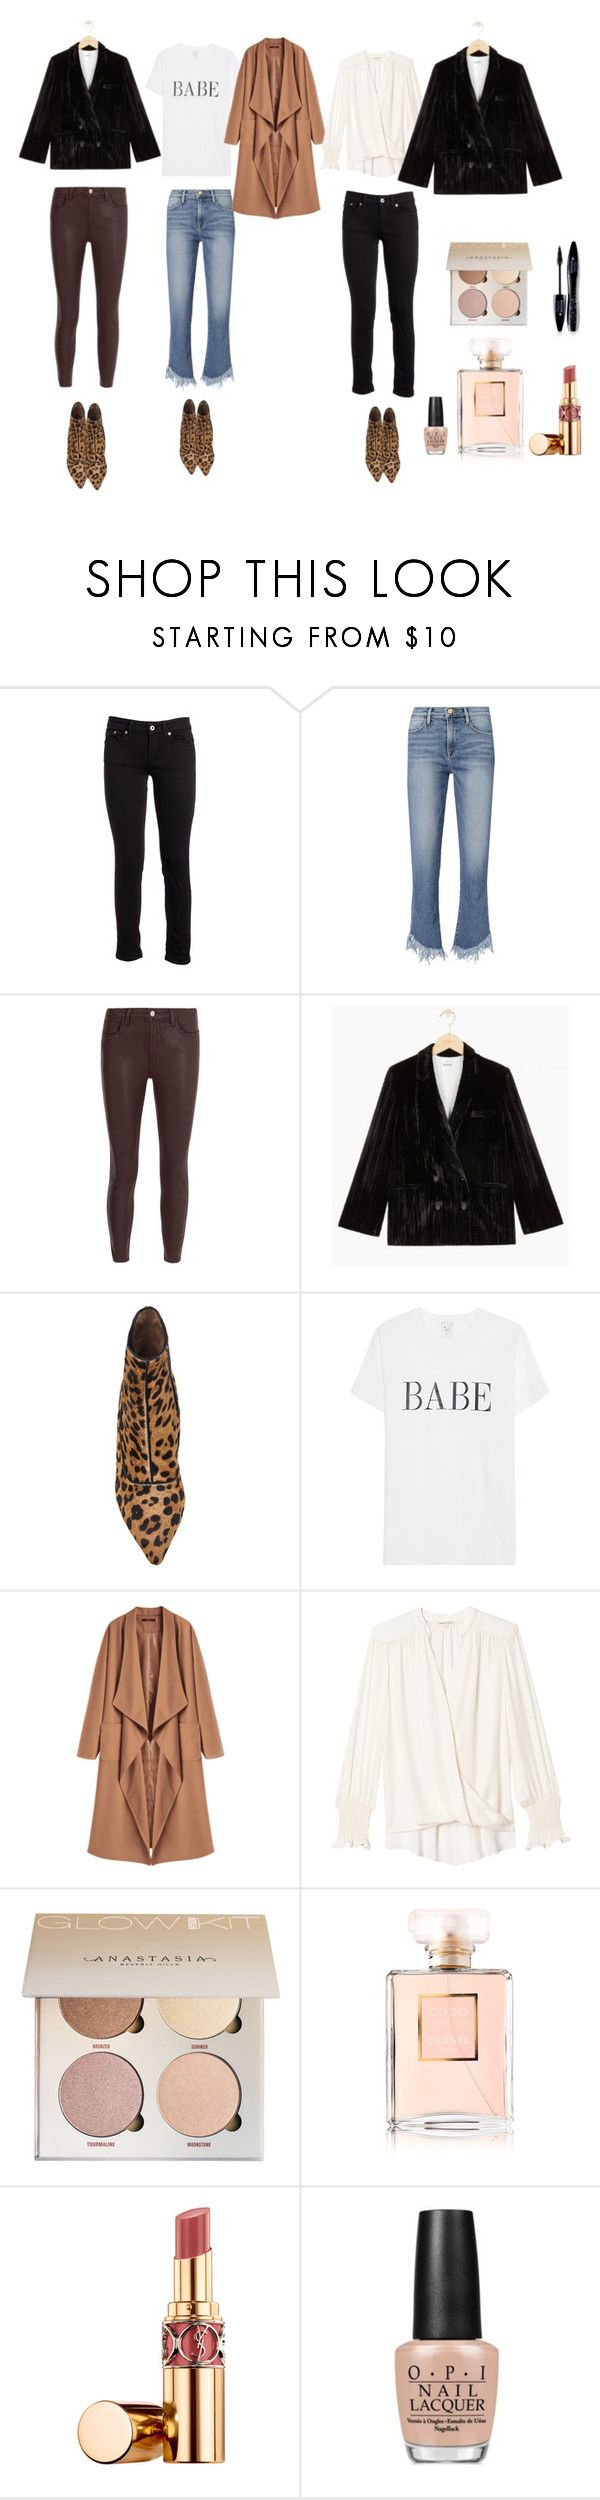 """""""fashionset"""" by mgomenuyk on Polyvore featuring мода, Dondup, Frame, L'Agence, Tabitha Simmons, Rebecca Taylor, Yves Saint Laurent, OPI и Lancôme"""